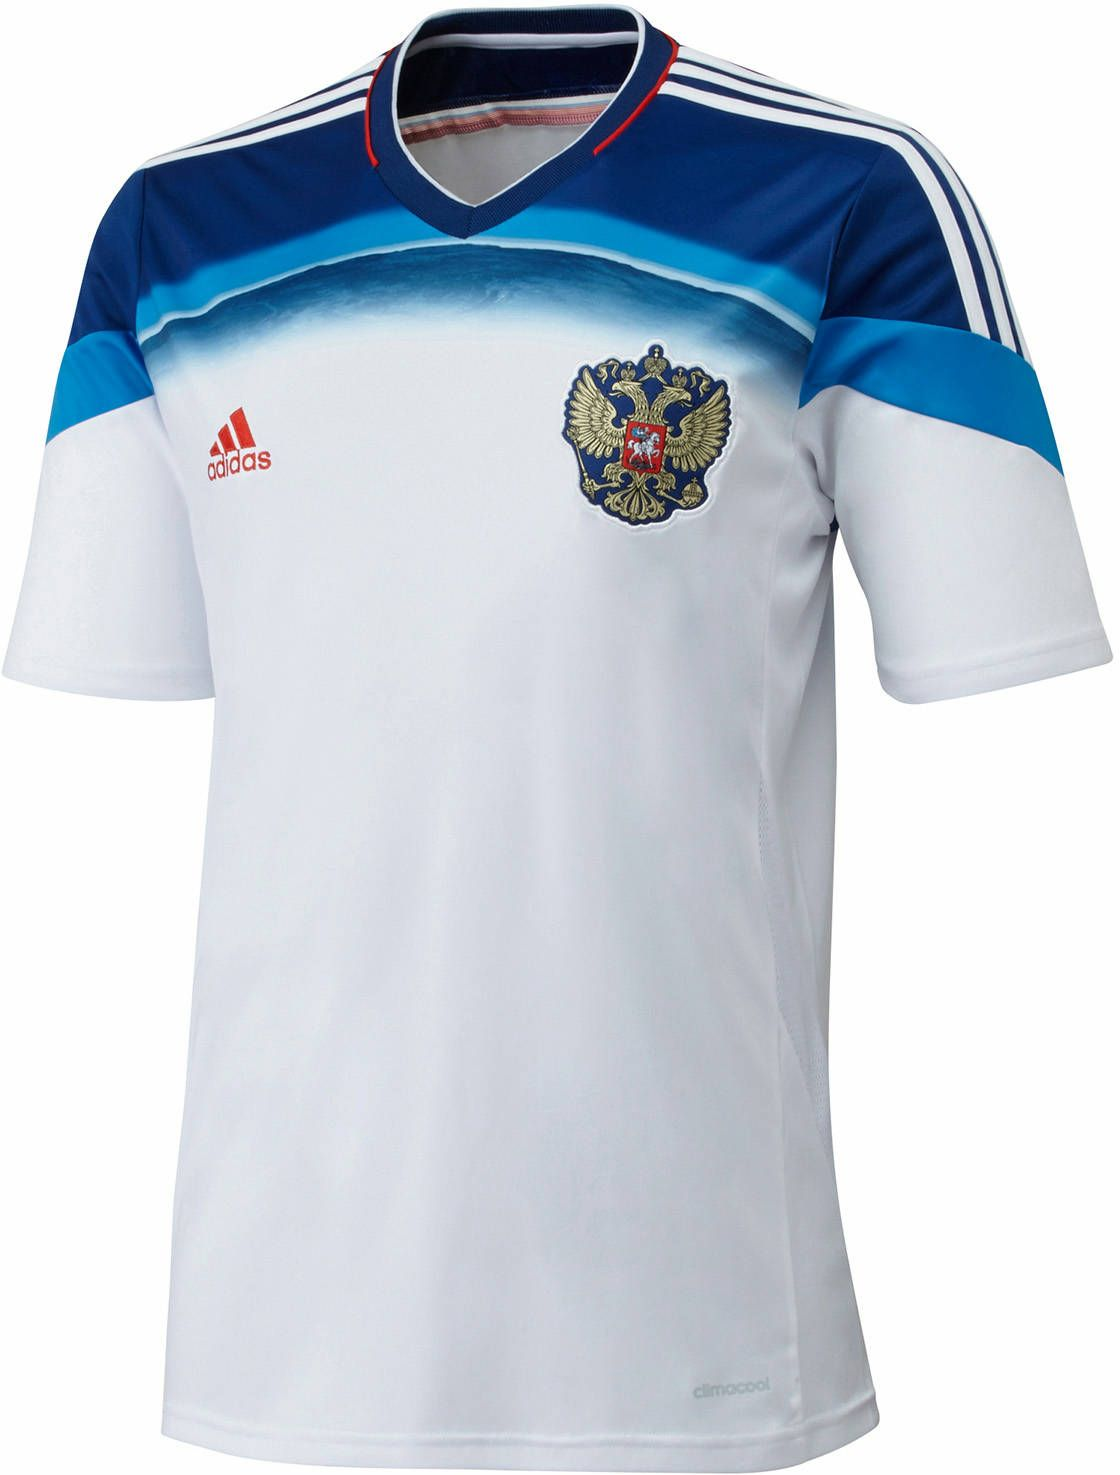 finest selection 8bae6 4c9cf Russia Away Kit for World Cup 2014 #worldcup #brazil2014 ...